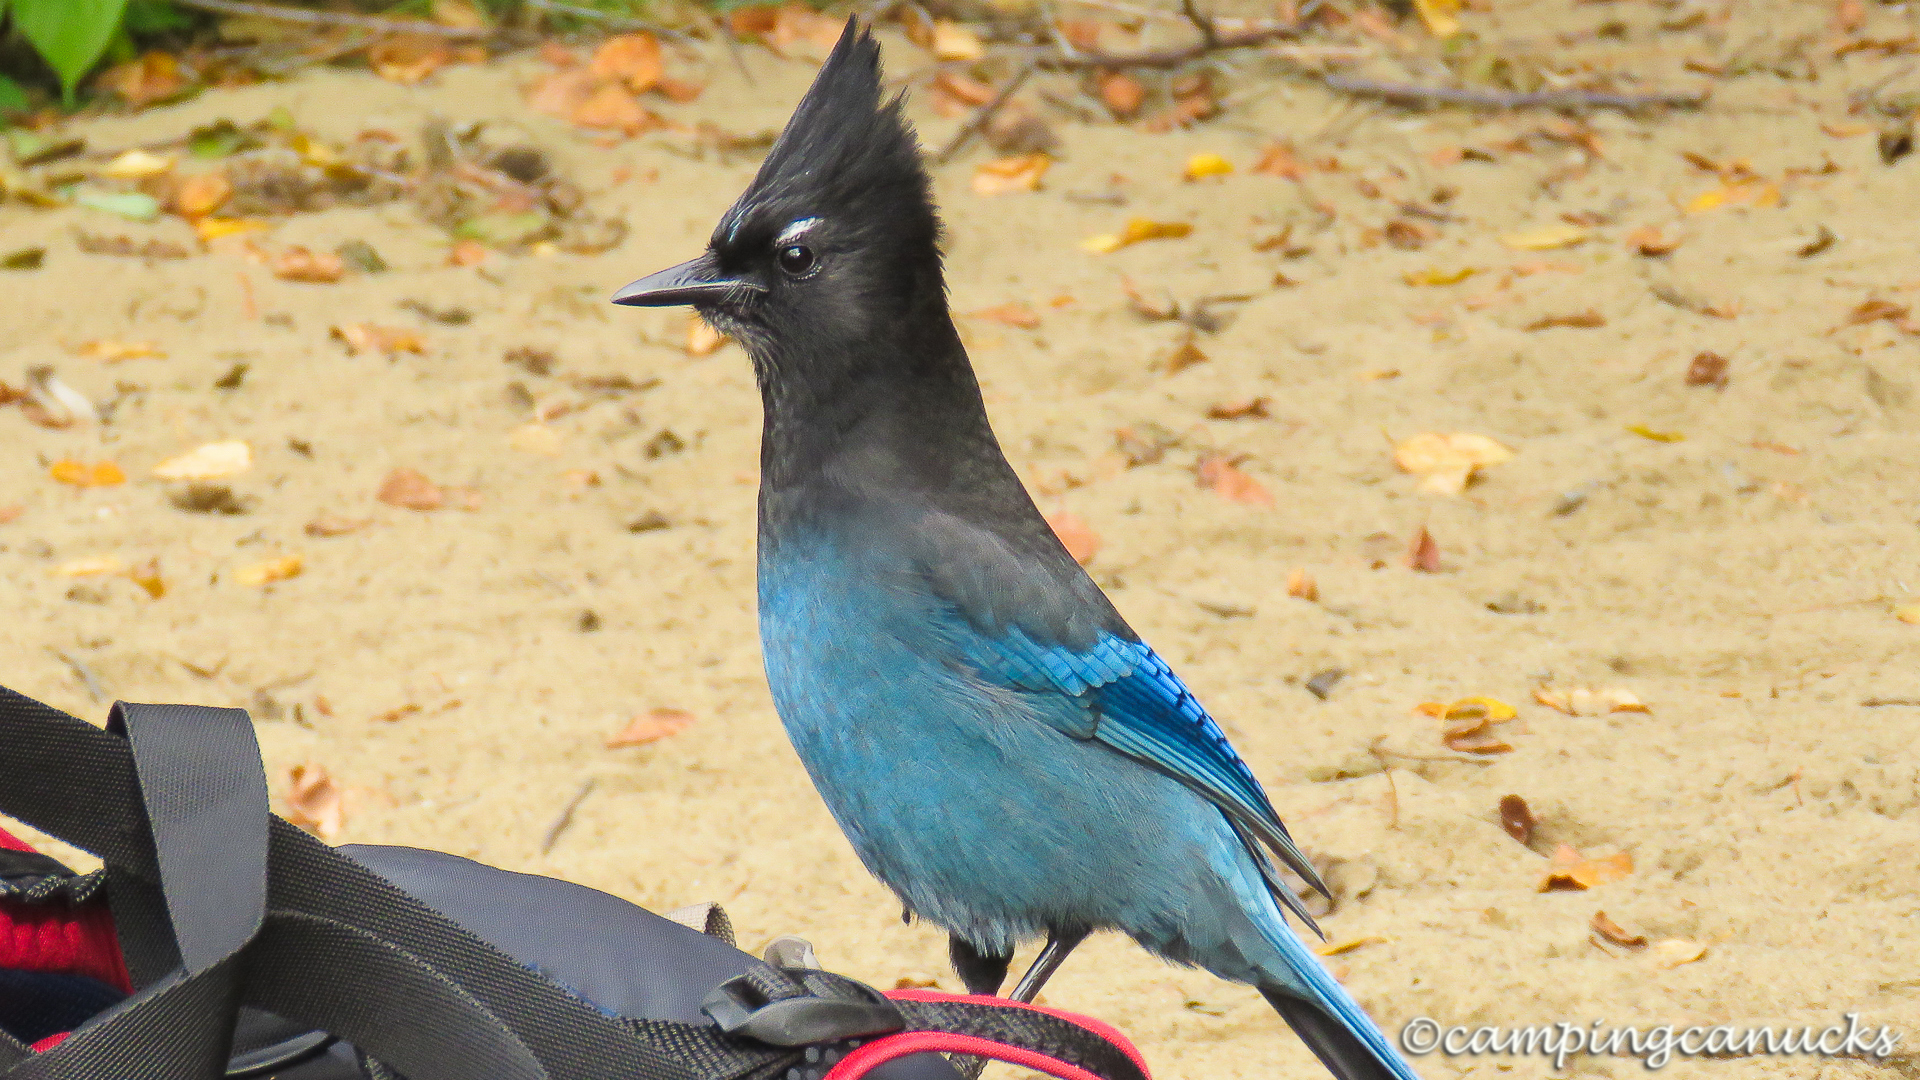 The Steller's Jay who followed us on the last portage